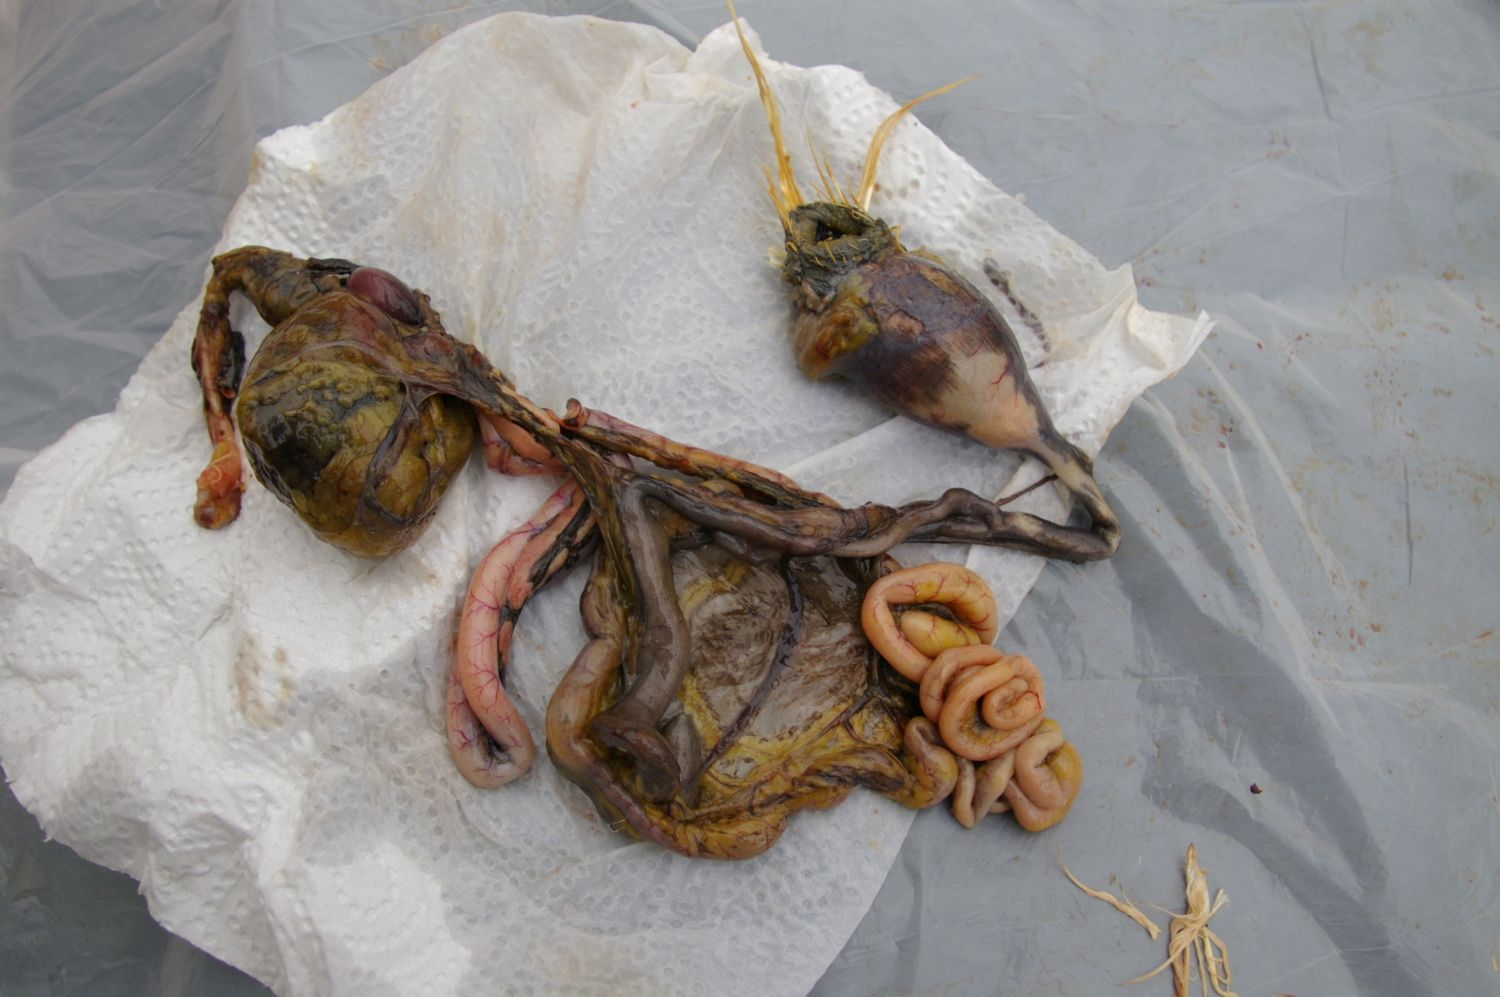 Bowel from Proventricular to bloated Cloaca.